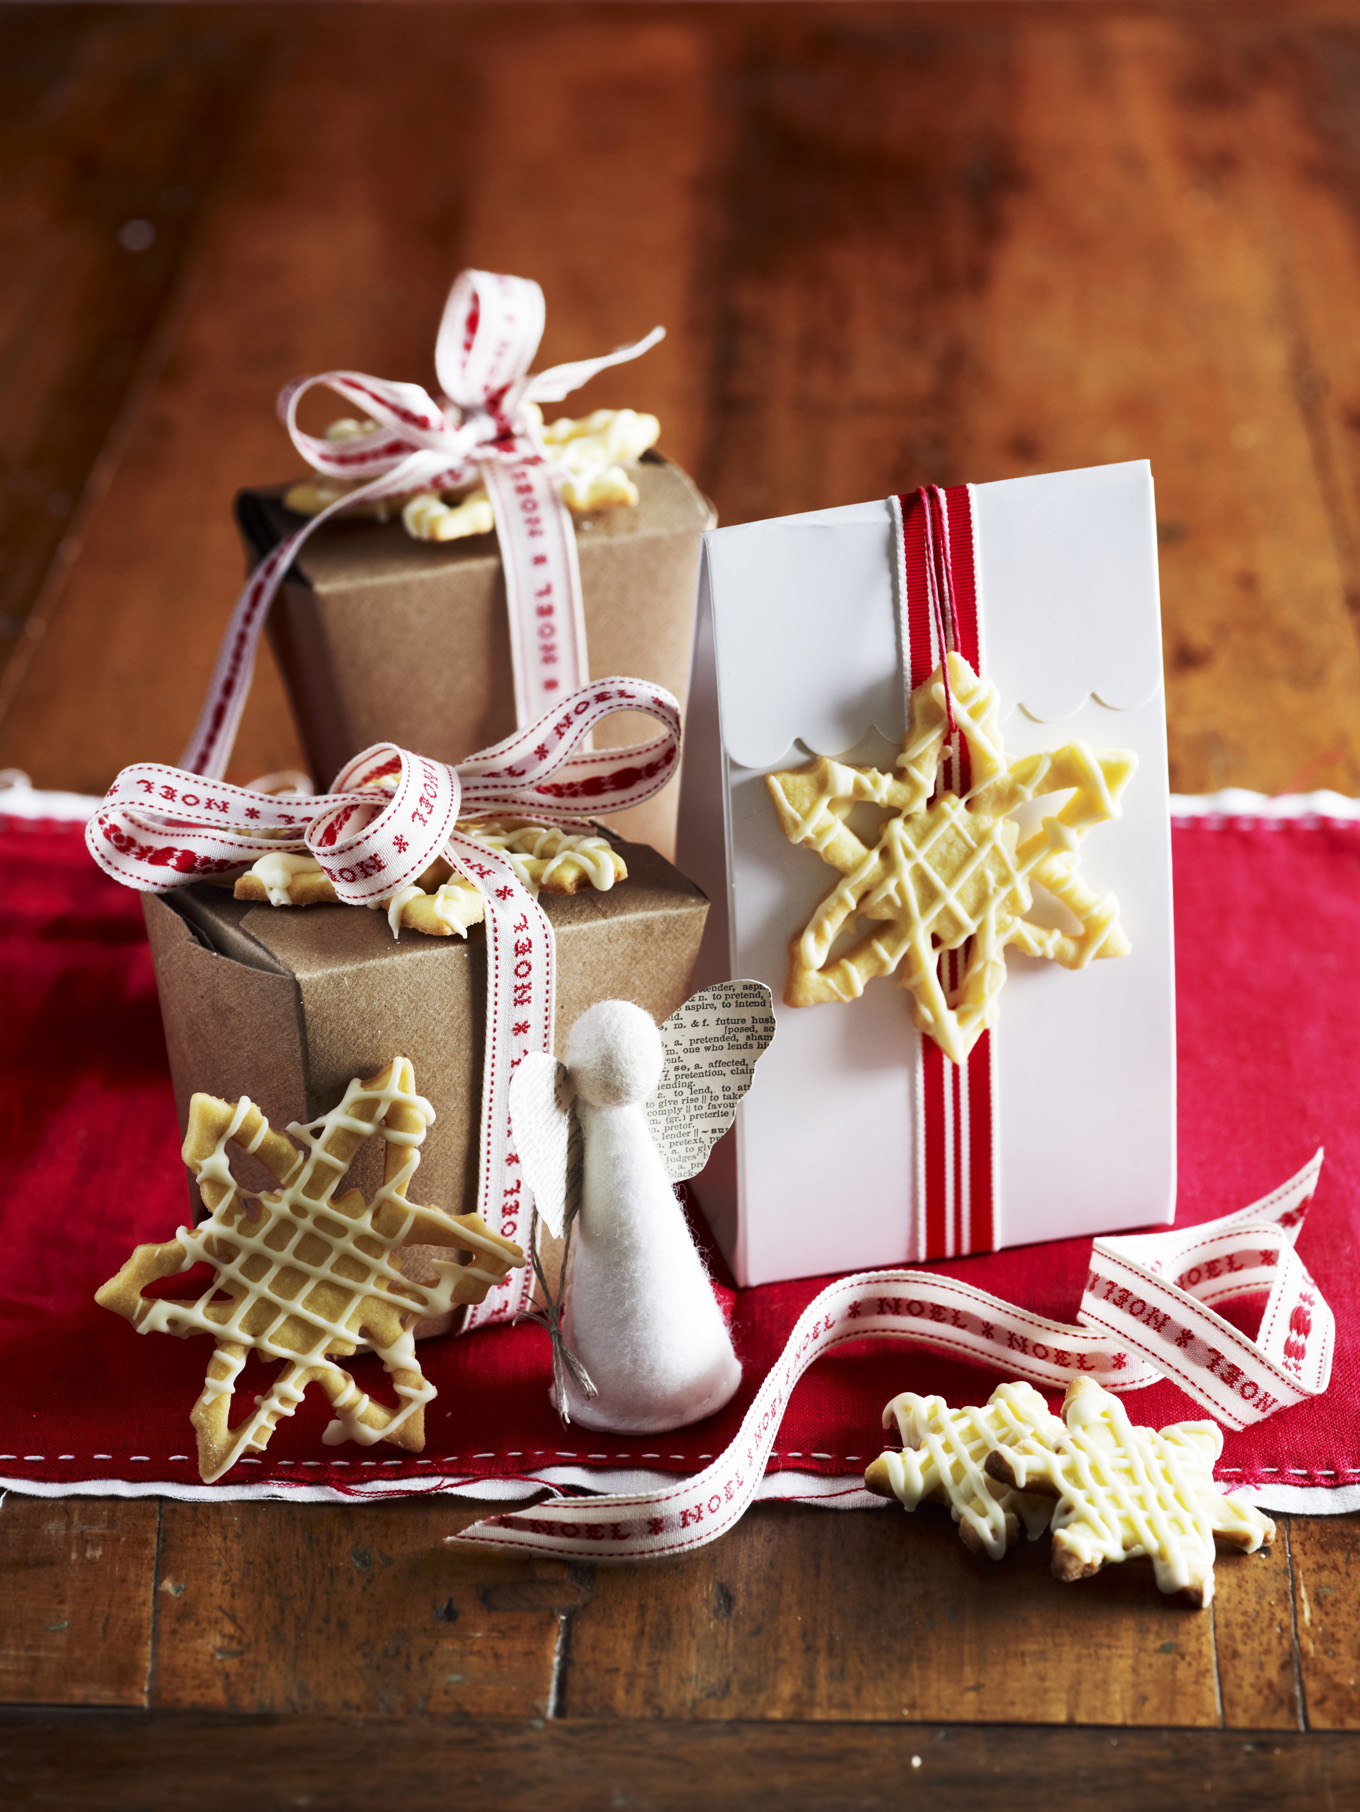 Christmas Gifts and Edible Presents - It's closer than you think! Stuck at what to give this year, well homemade edible gifts are the perfect answer.6 places available